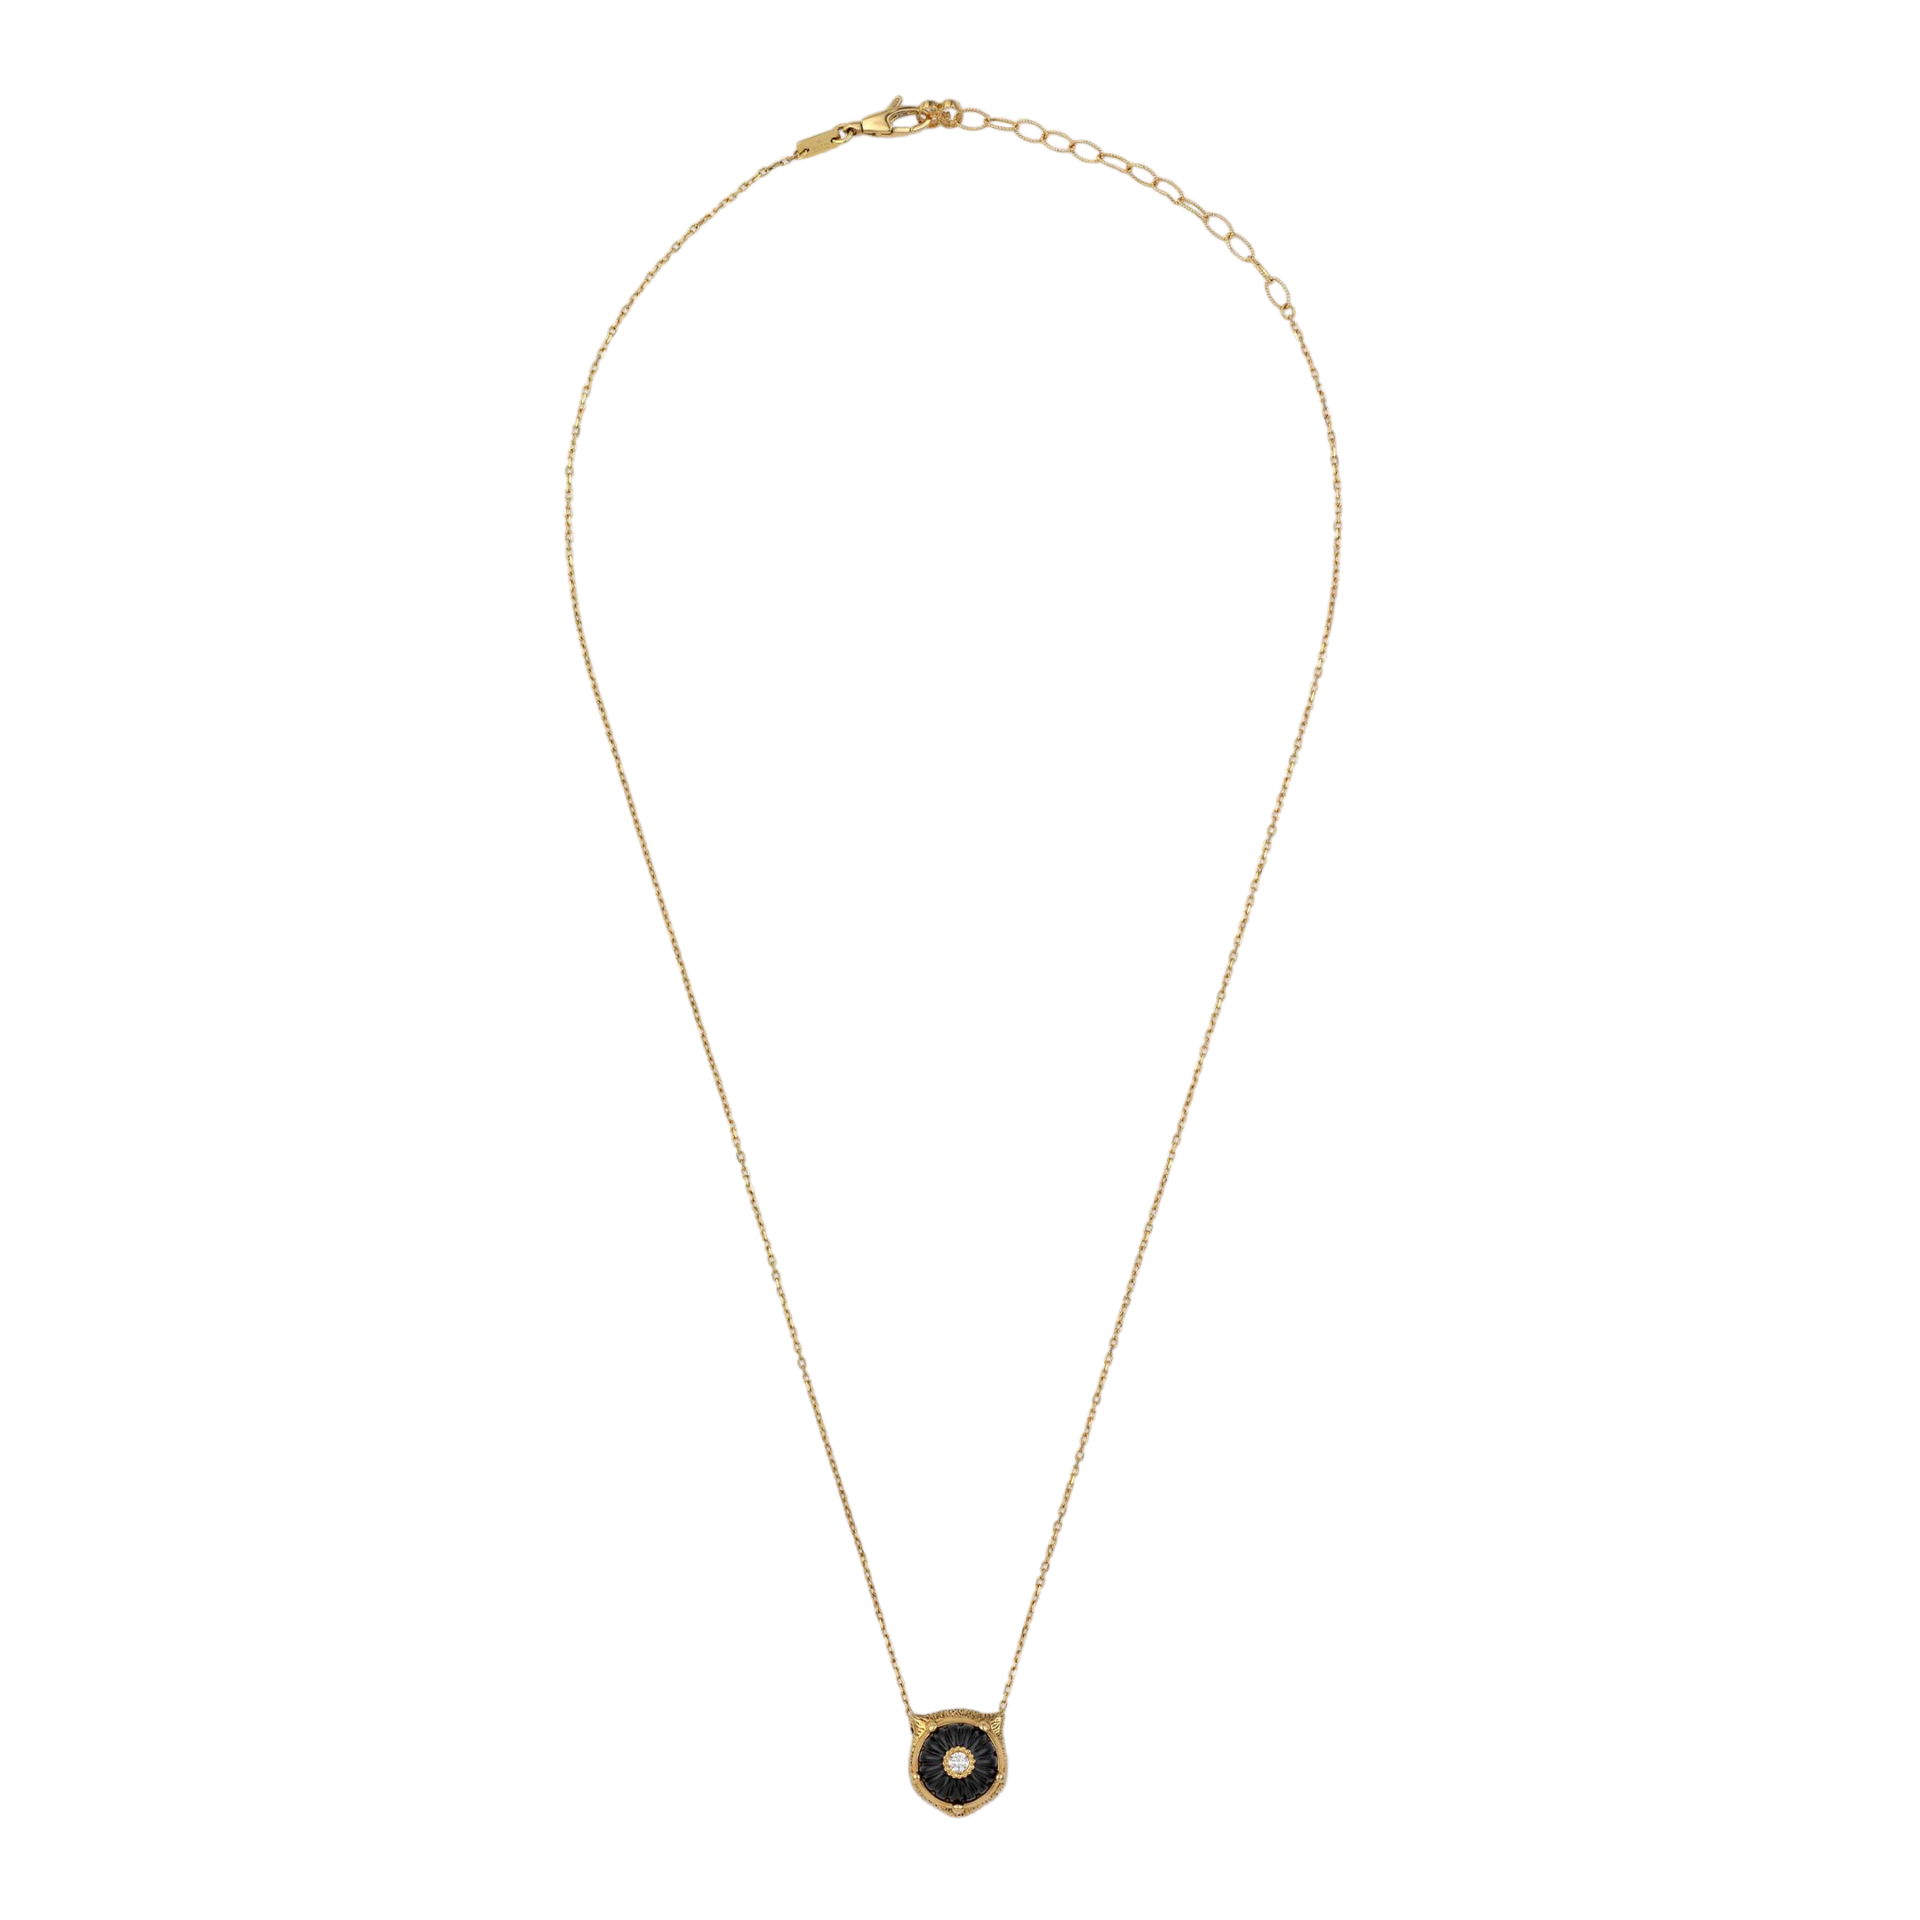 Gucci Le Marché des Merveilles Necklace in 18k Yellow Gold with Onyx and Diamonds - Orsini Jewellers NZ